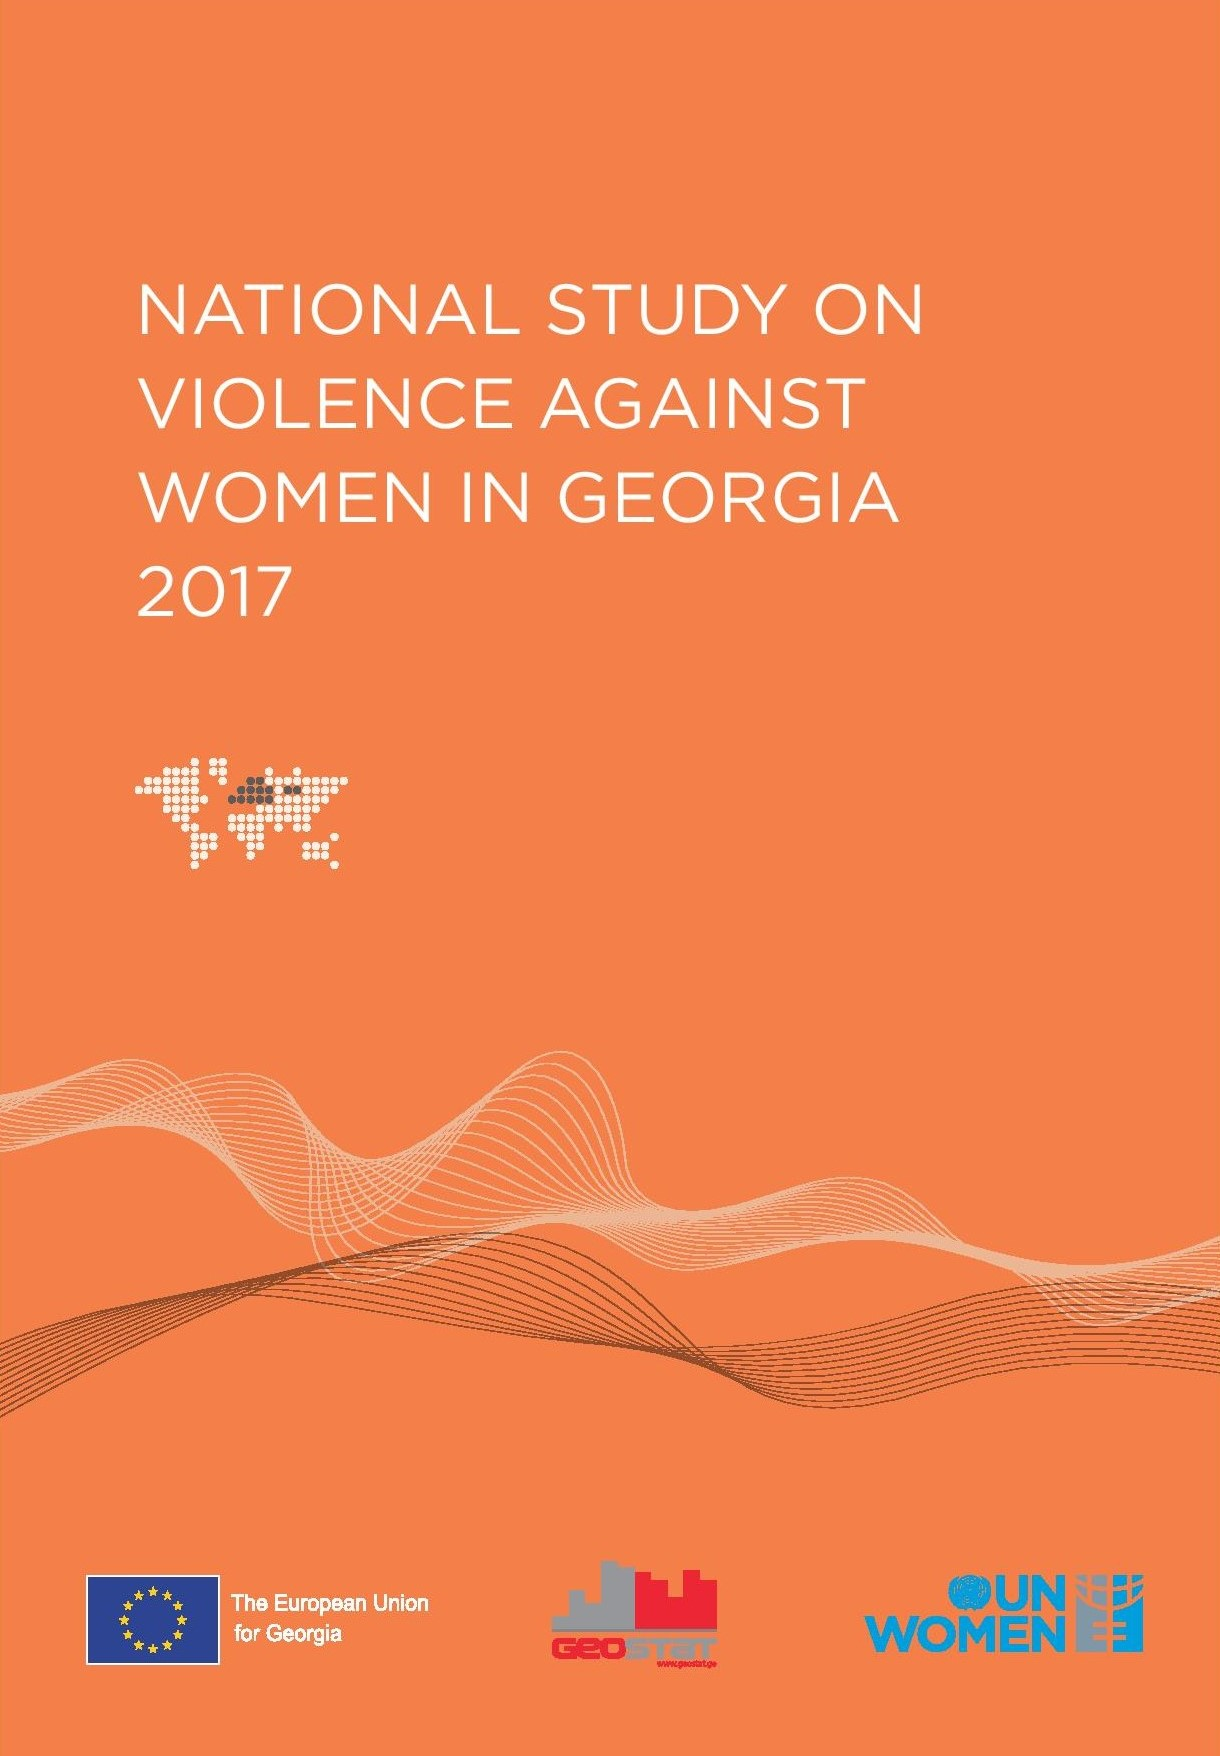 National Study on Violence against Women in Georgia 2017